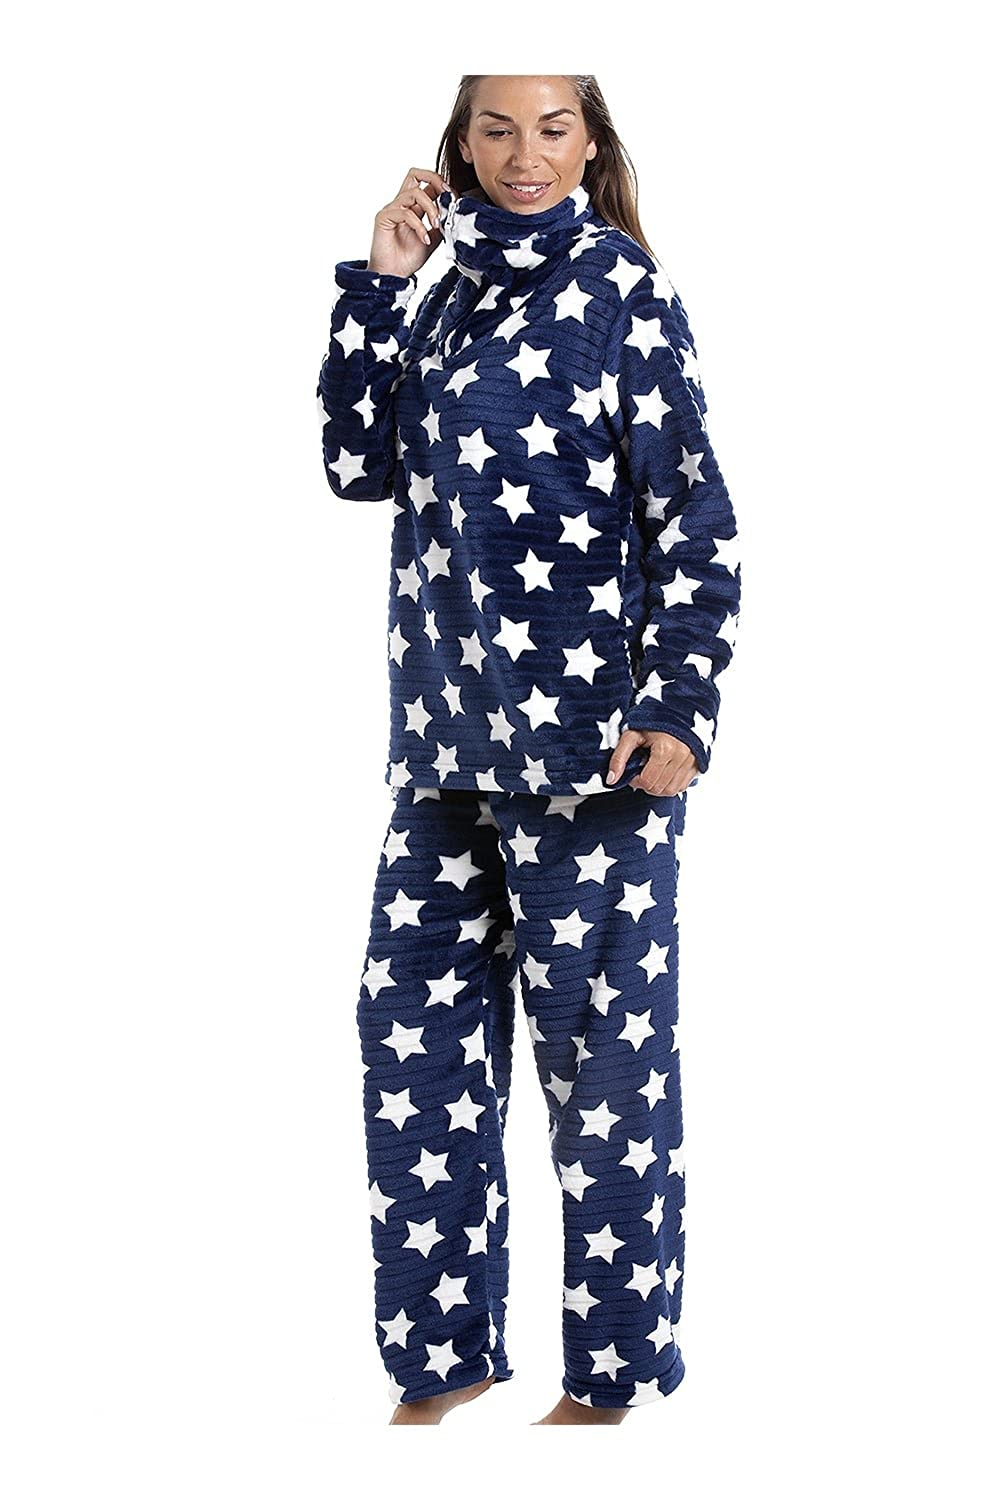 Camille Womens Ladies Navy Blue Supersoft Velour Fleece White Star Print Pajama Set 14/16 Blue at Amazon Womens Clothing store: